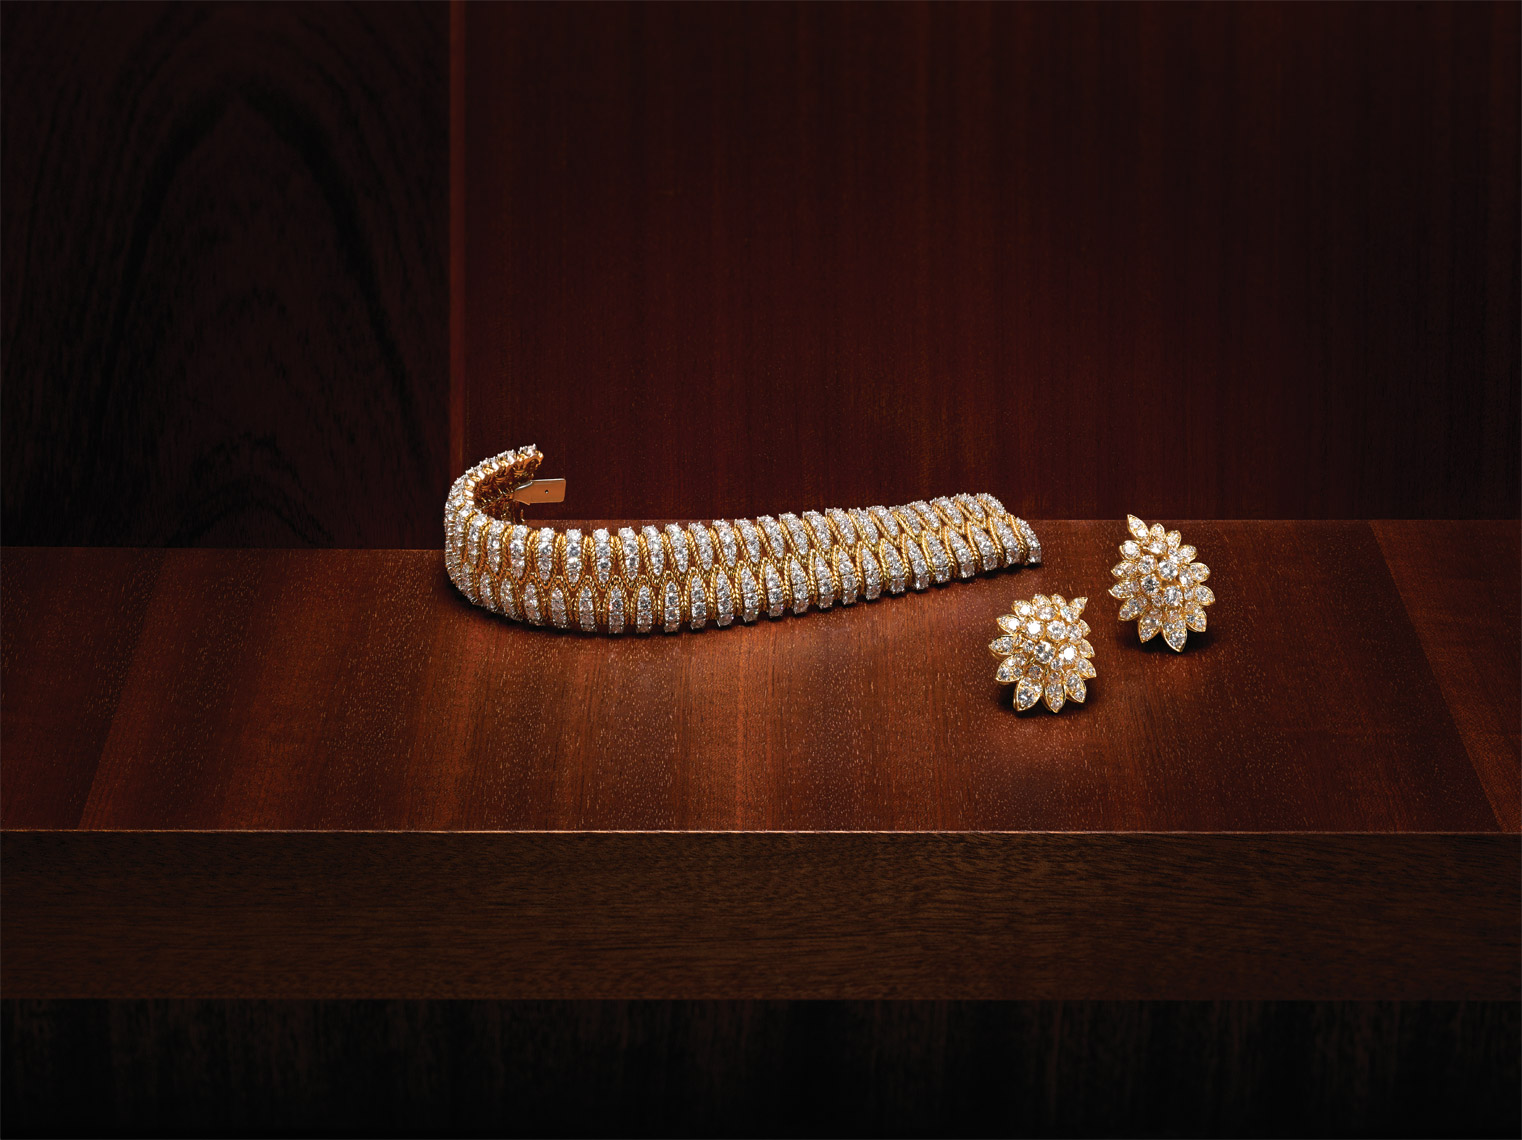 High End Jewelry Photography NYC - Van Cleef & Arpels Diamonds Bracelet and Earrings